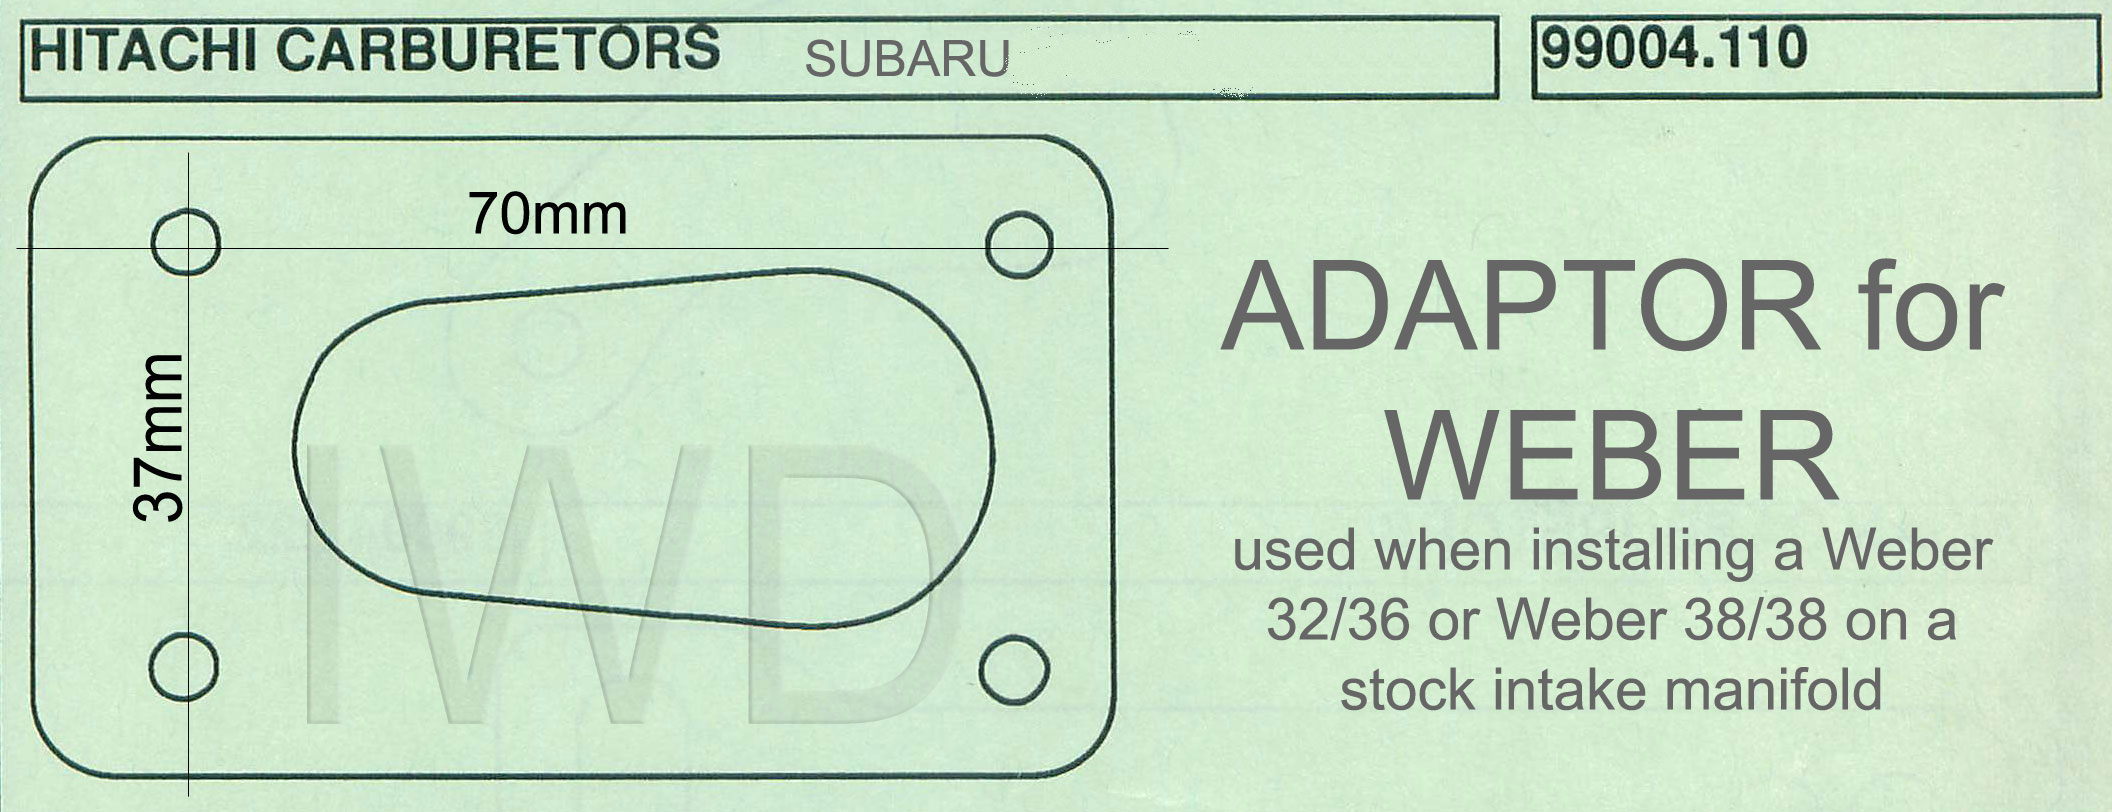 Adapter Plate For Installing Weber Carb Subaru Ea81 Ohv 1600 1800 Wiring Diagram Click Pictures To Enlarge